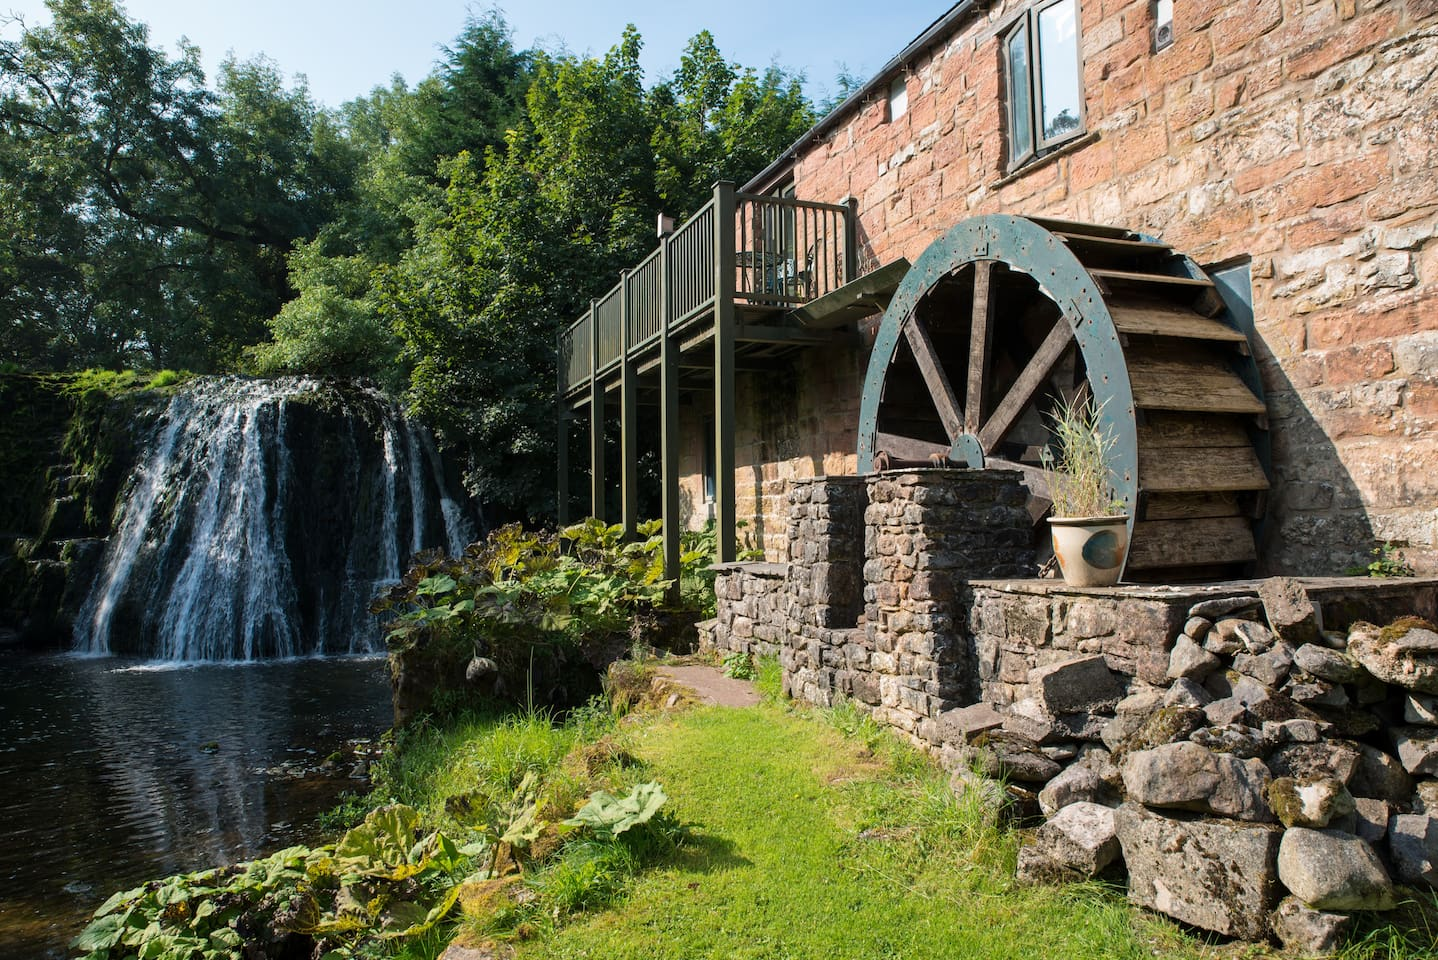 Stay in this converted watermill by the stunning Rutter Falls.